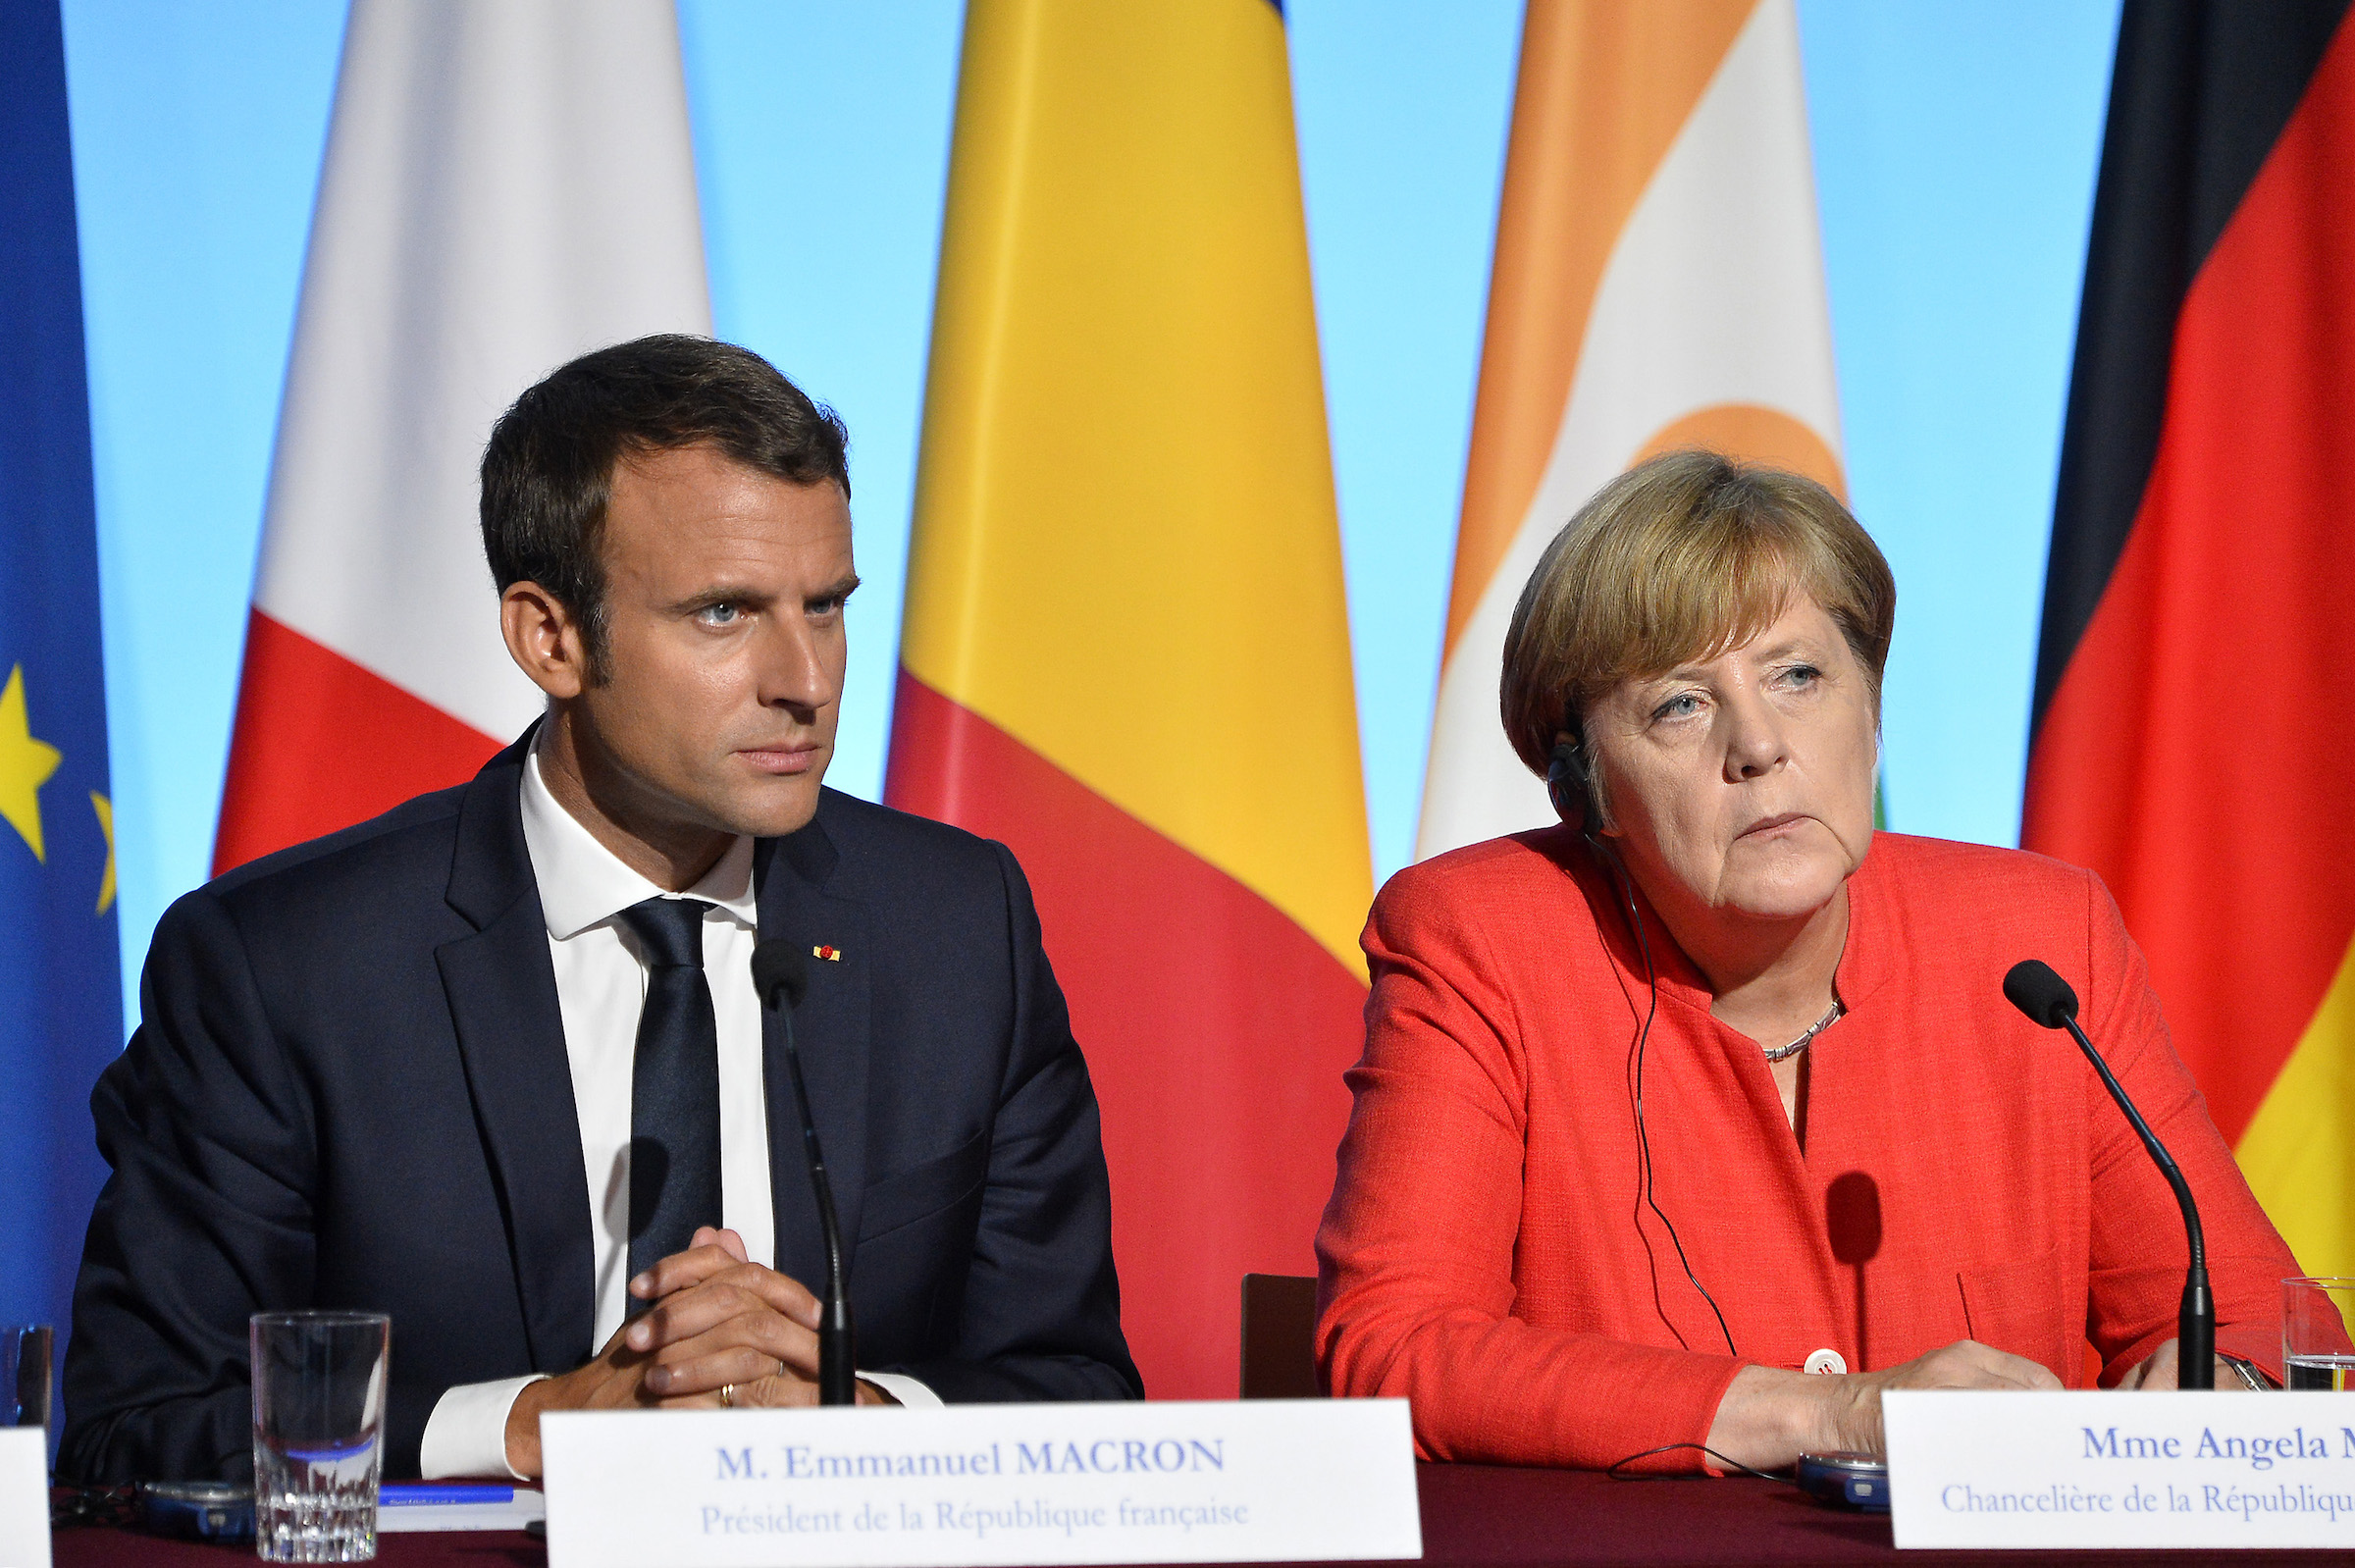 French President Emmanuel Macron and German Chancelor Angela Merkel react during a press conference after the multinational meeting at Elysee Palace on August 28, 2017 in Paris, France.